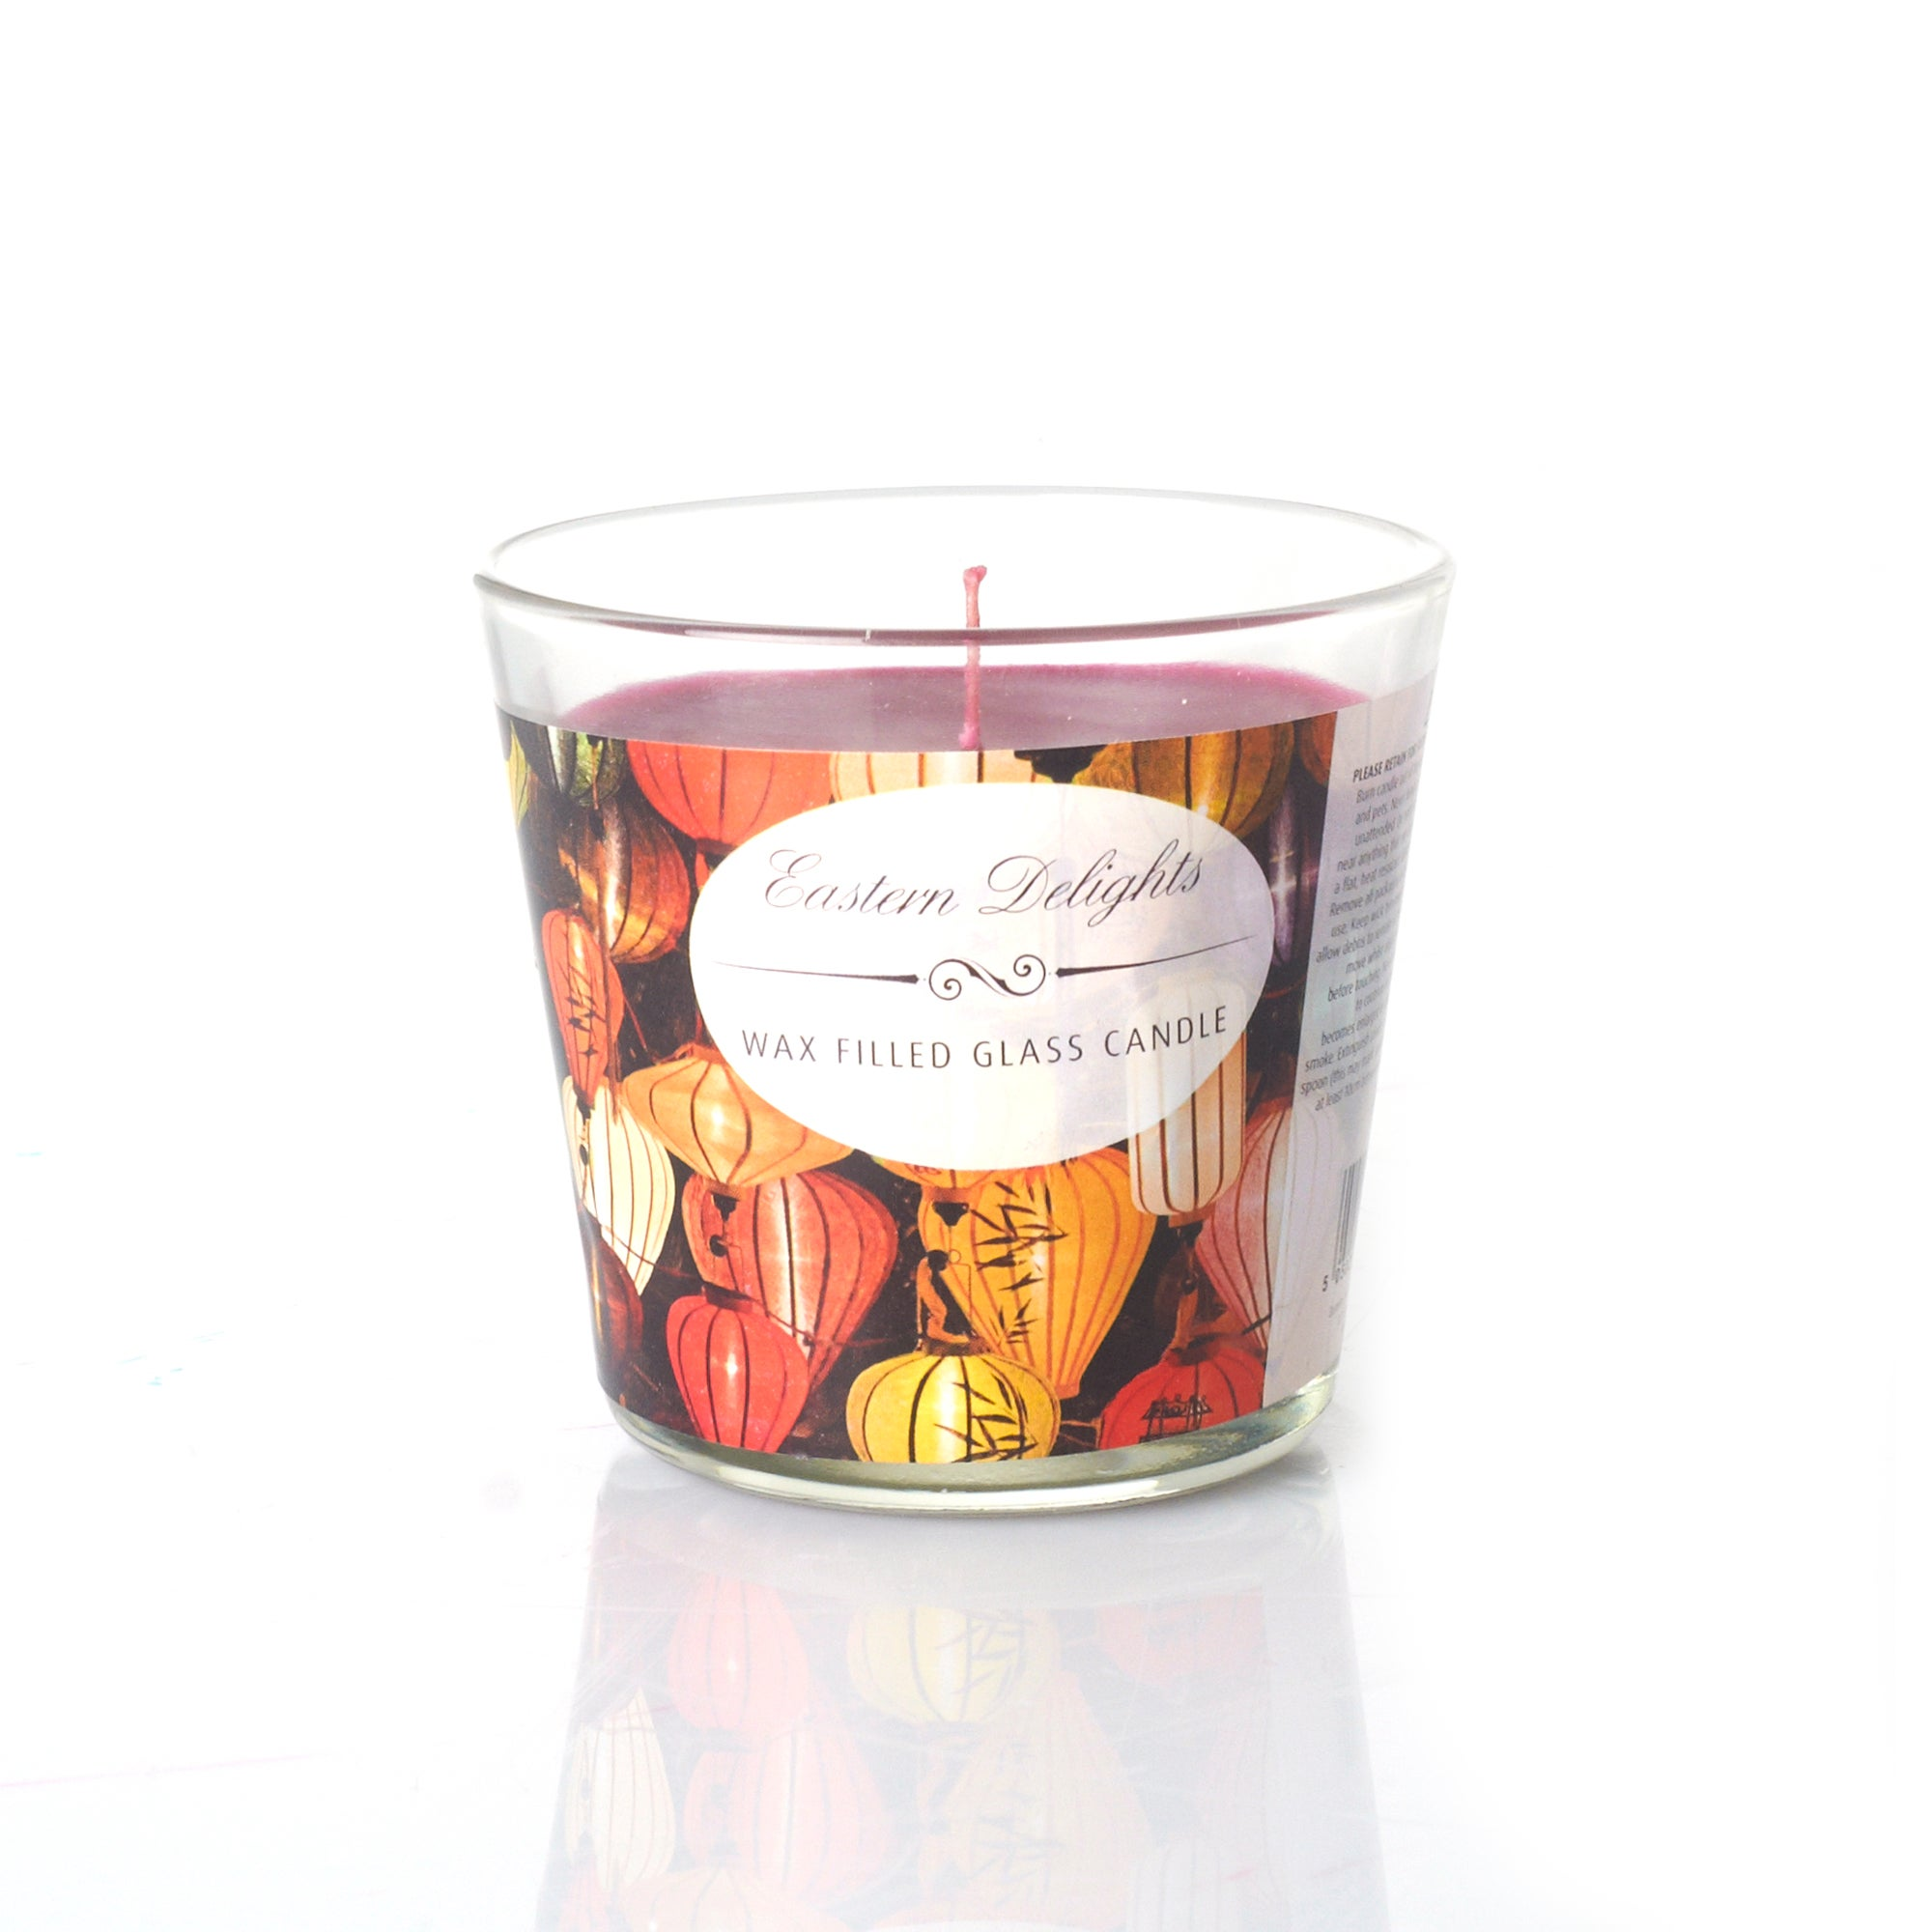 Eastern Delights Wax Filled Glass Candle